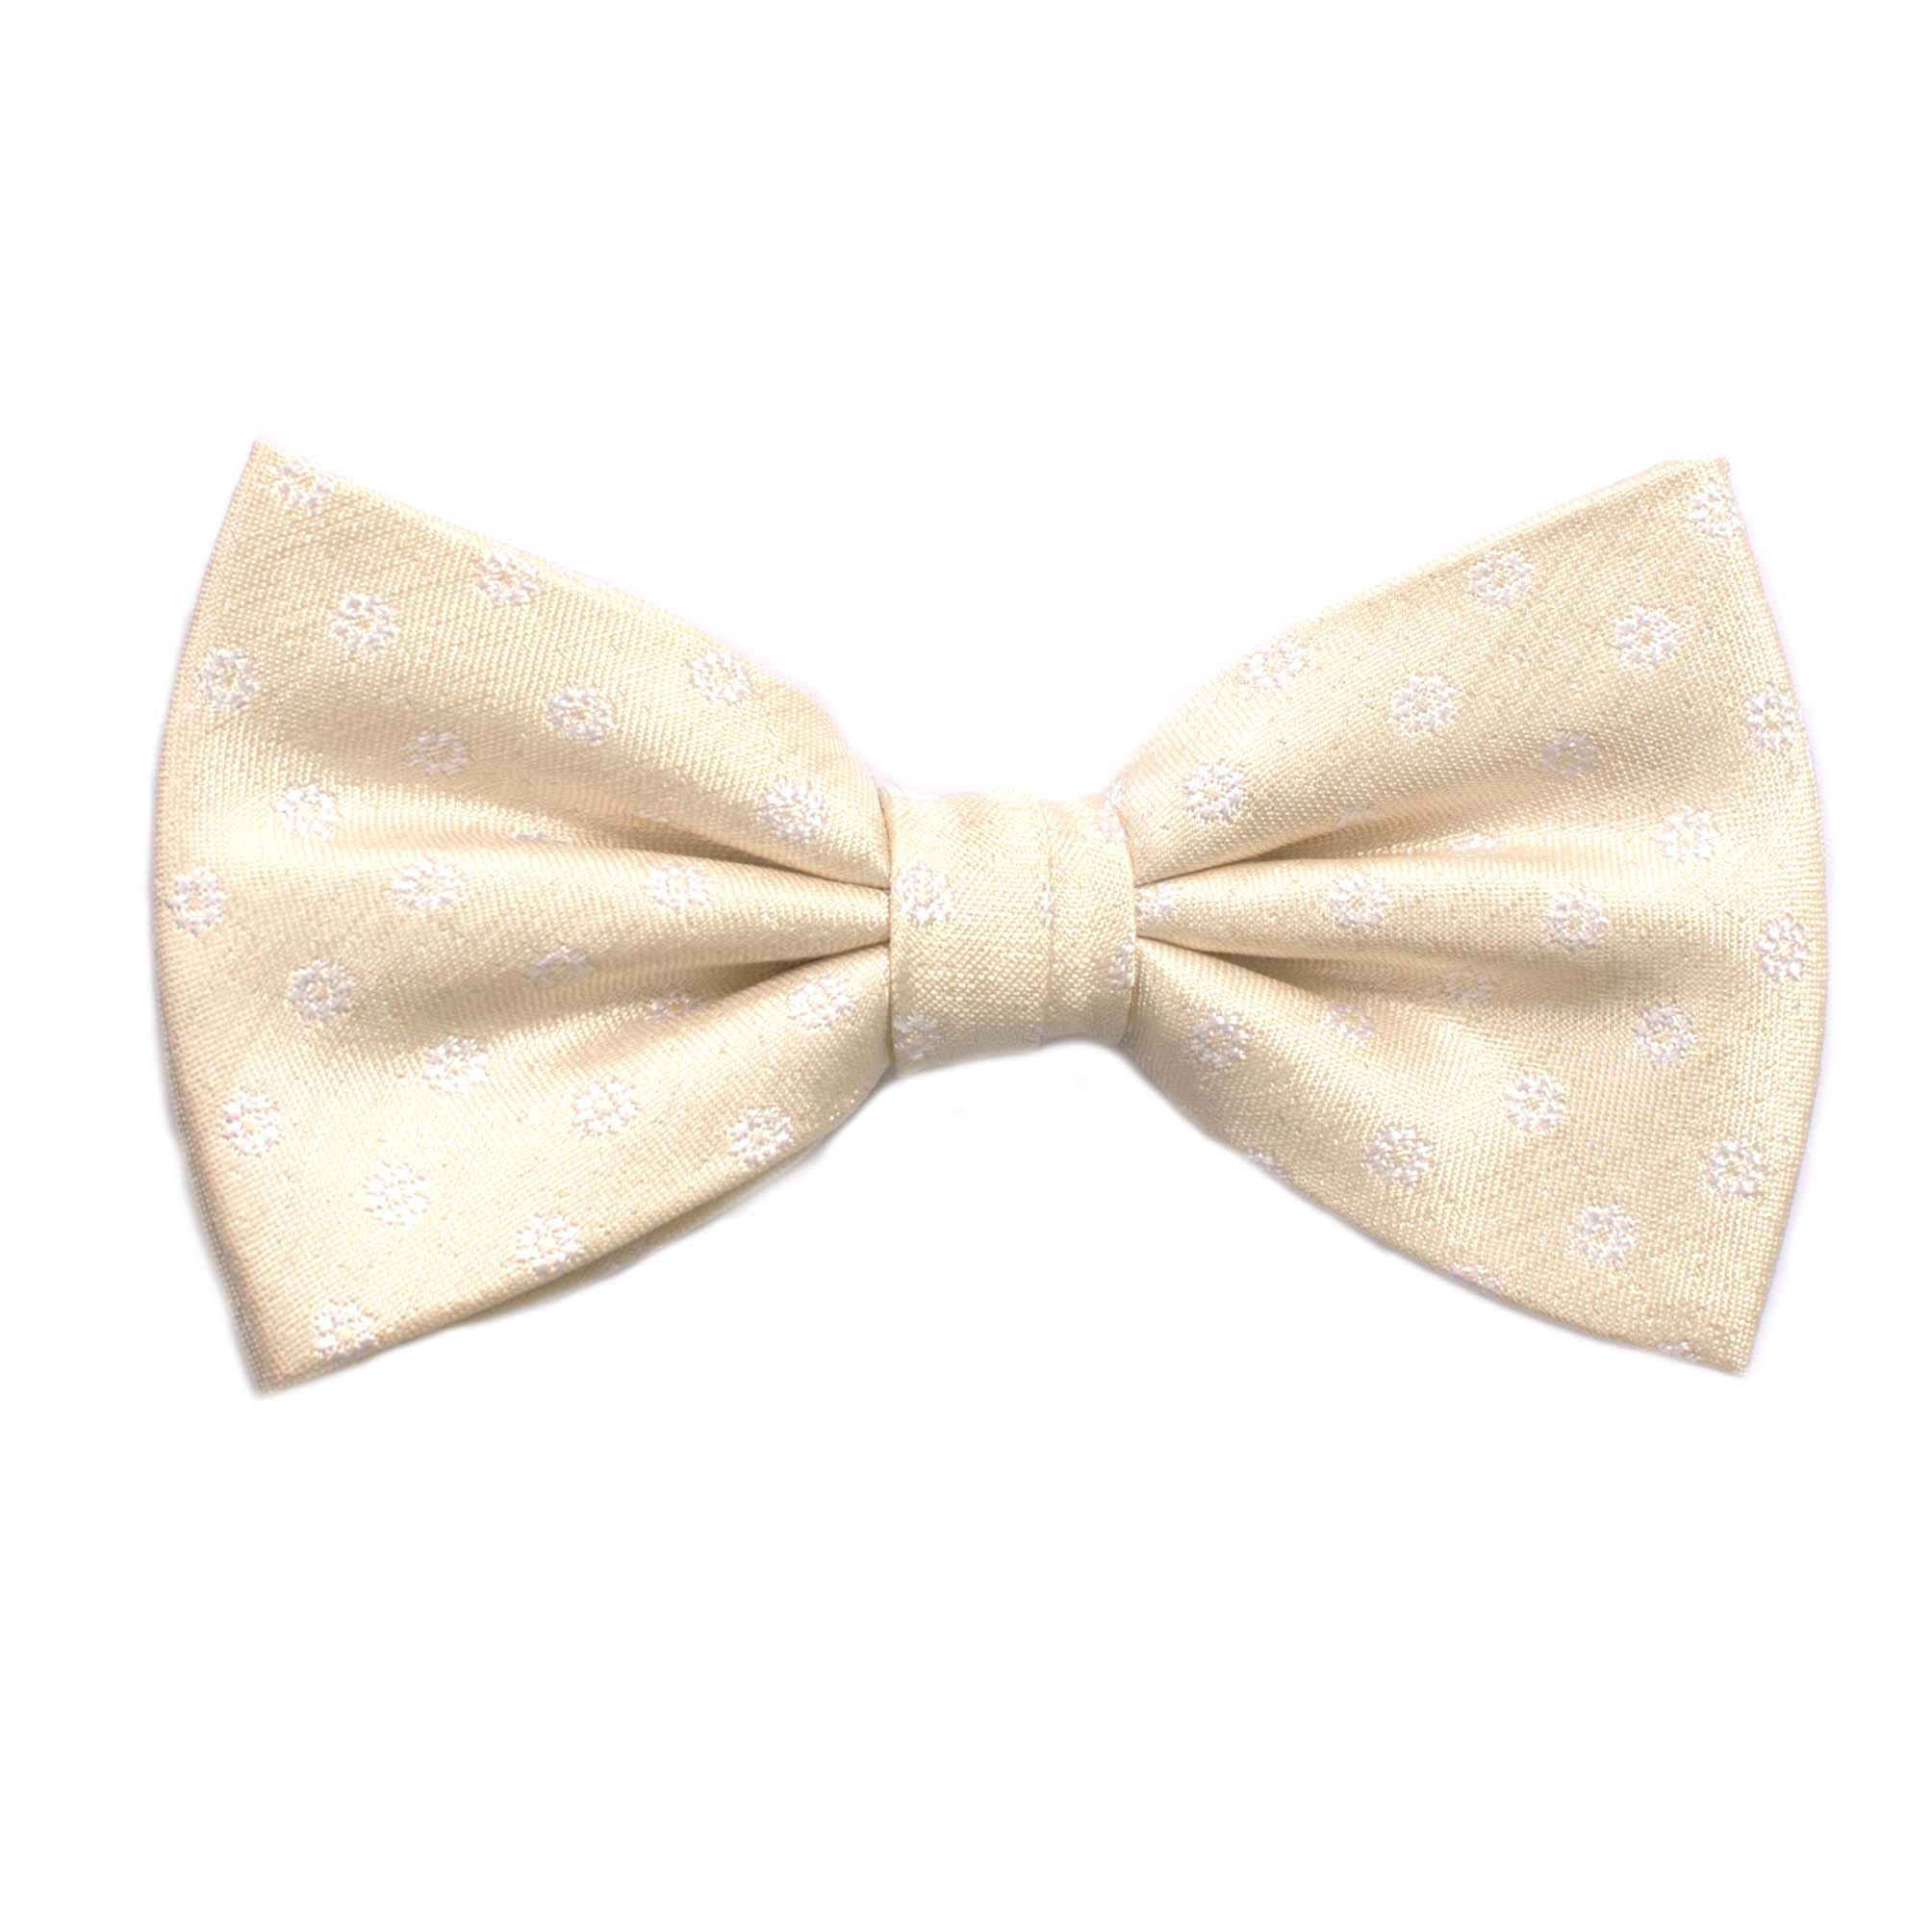 Bow tie with small flower design light yellow